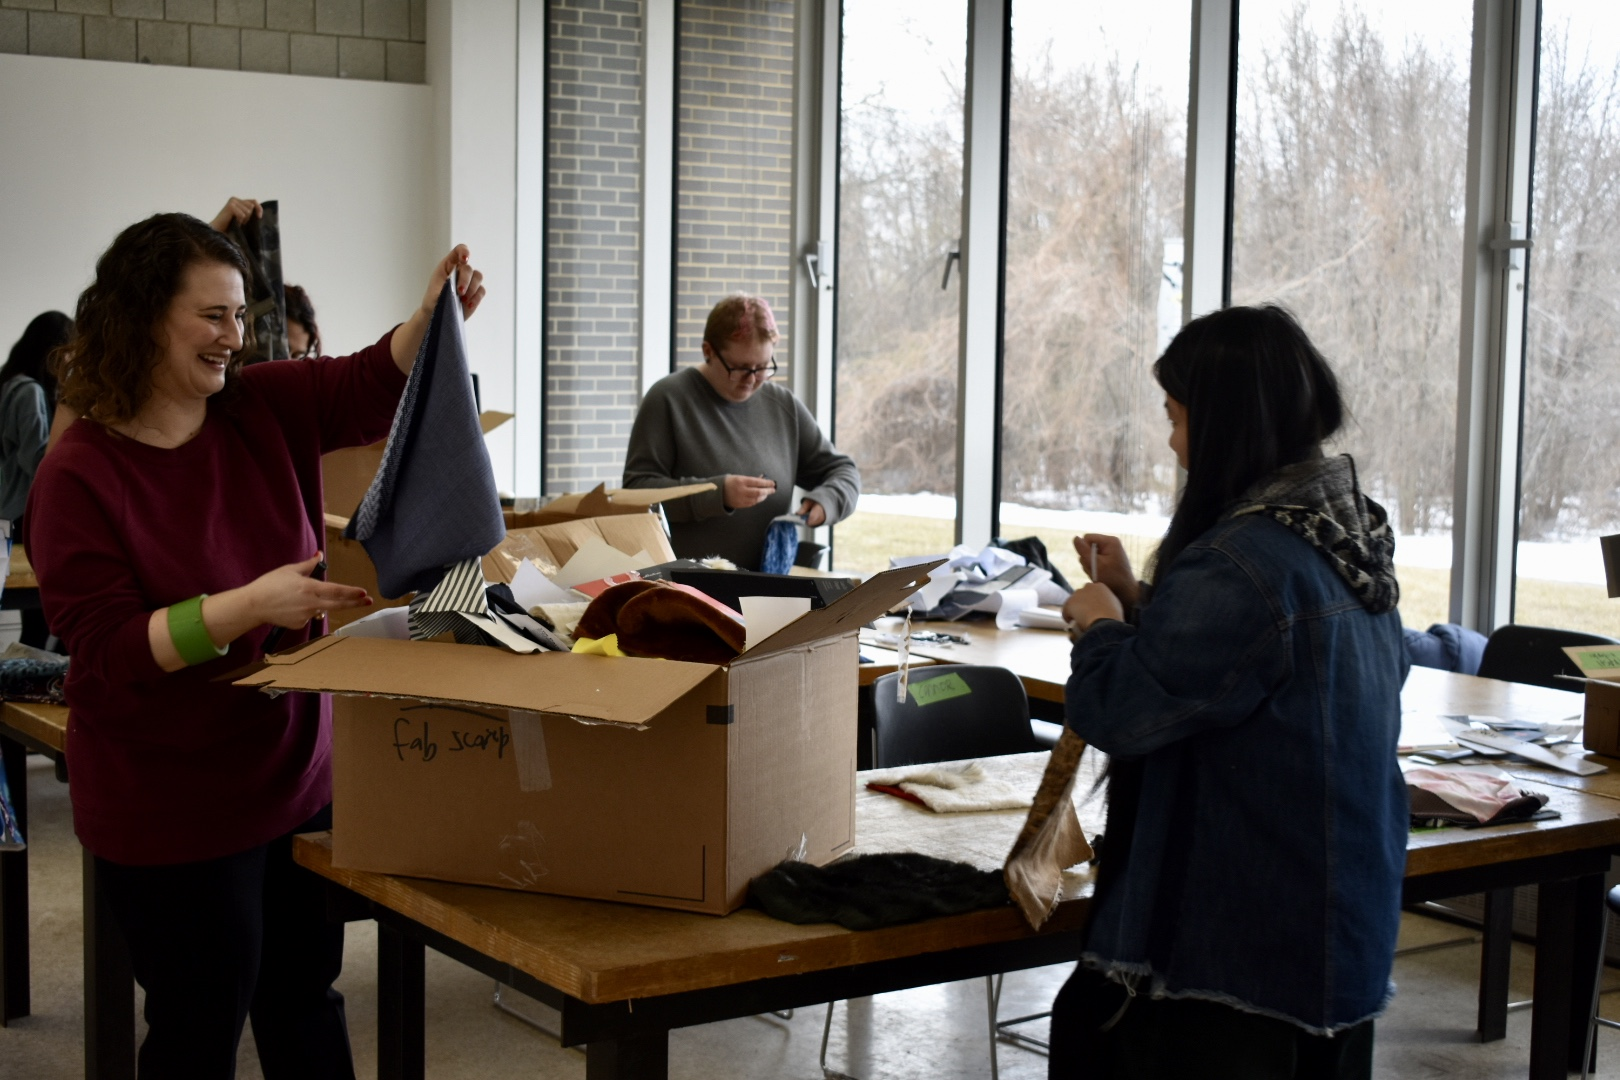 Professor Polak holds up a piece of fabric. (Photo by Sierra Petro)